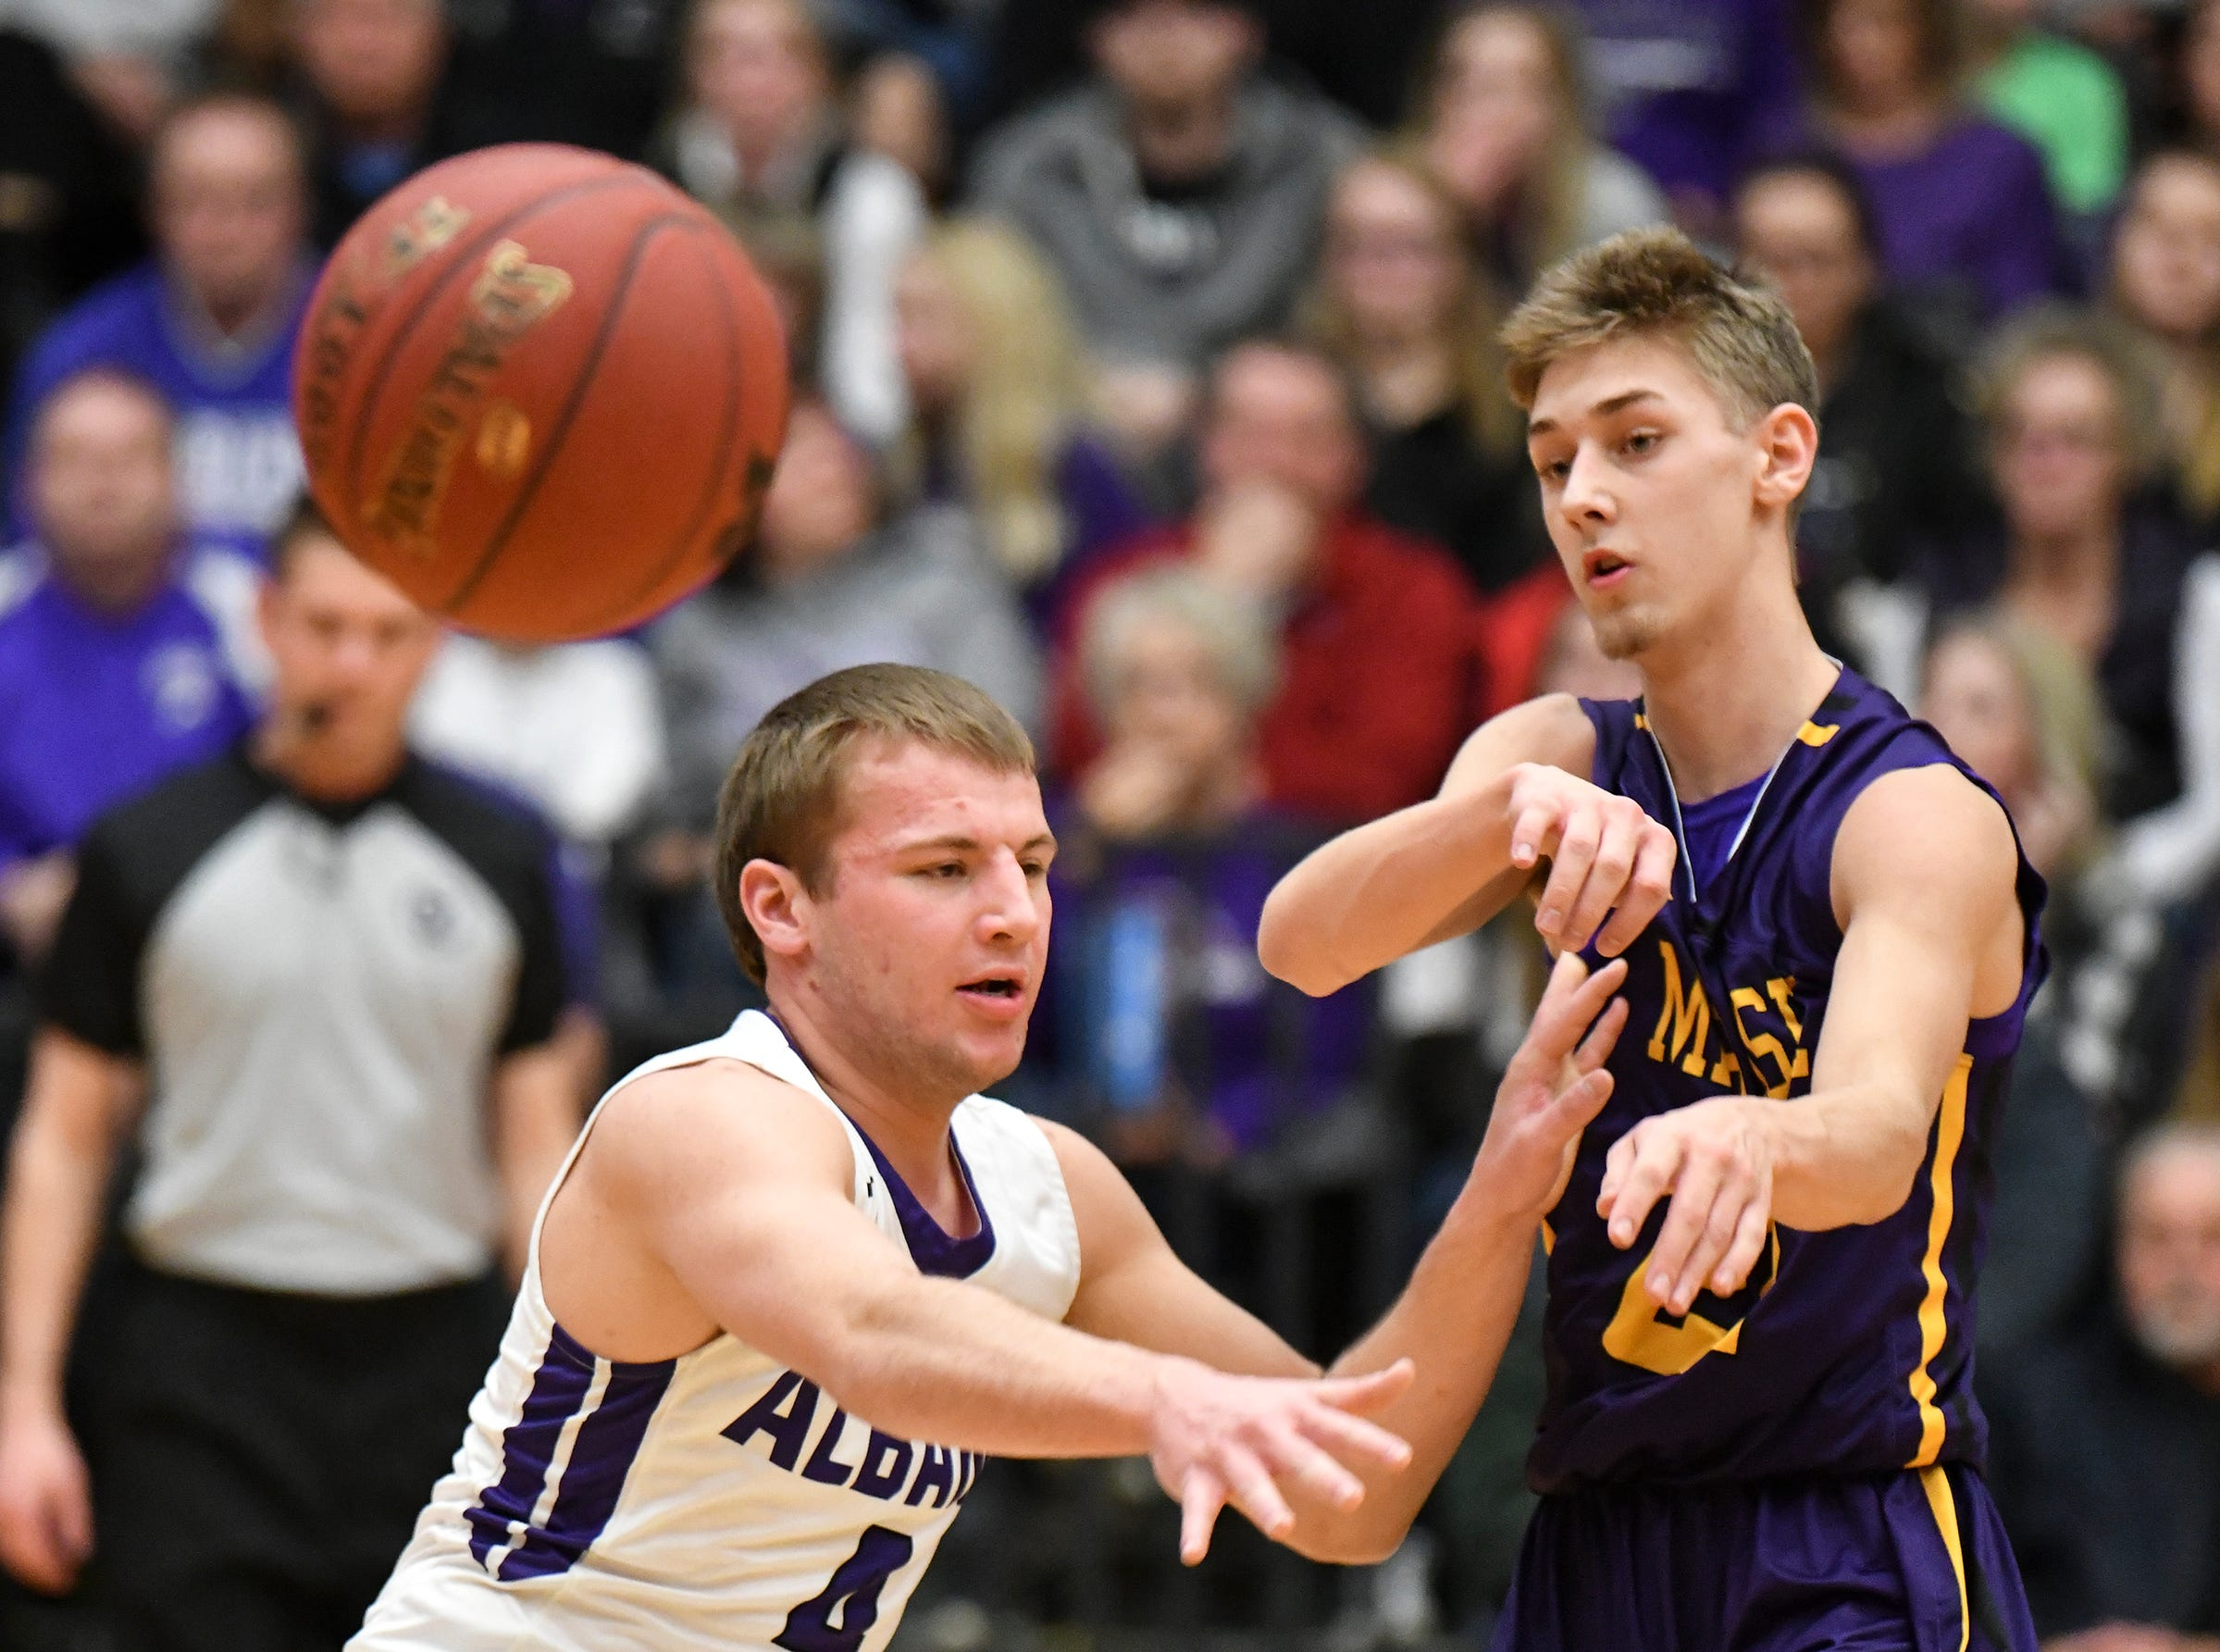 Grant Moscho of Melrose passes the ball during the first half of the Friday, March 15, Section 6-2A championship game at  Halenbeck Hall in St. Cloud.